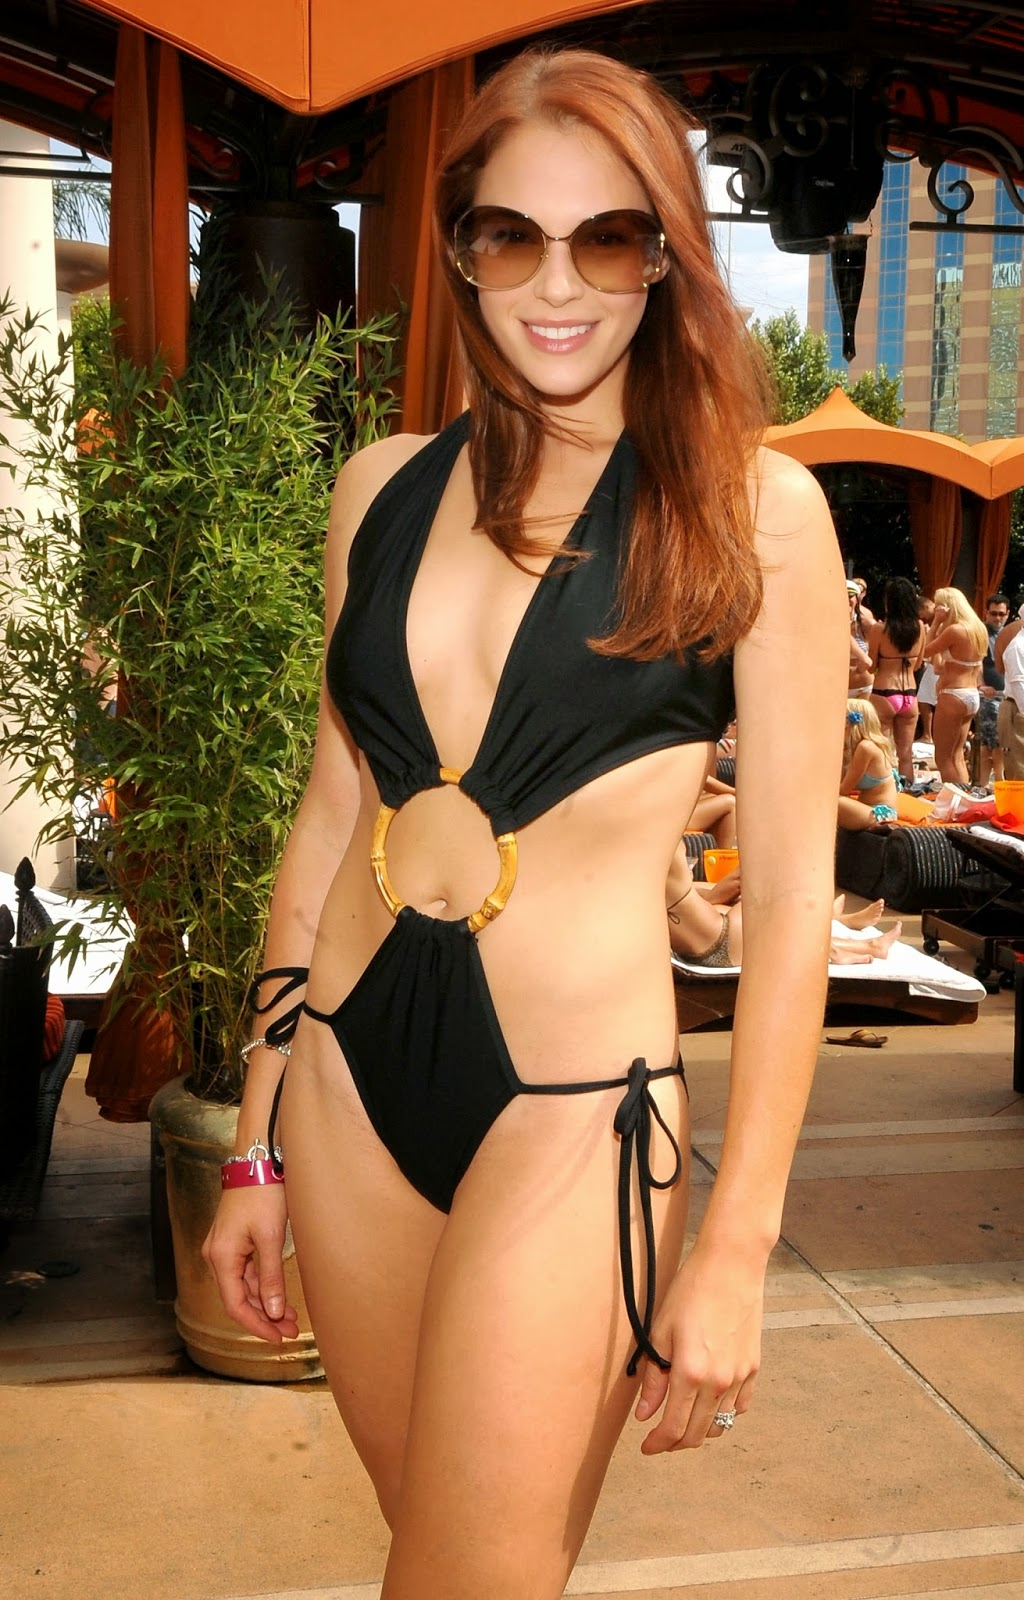 Amanda Hot Images latest celebrity photos: amanda righetti hot and sexy bikini